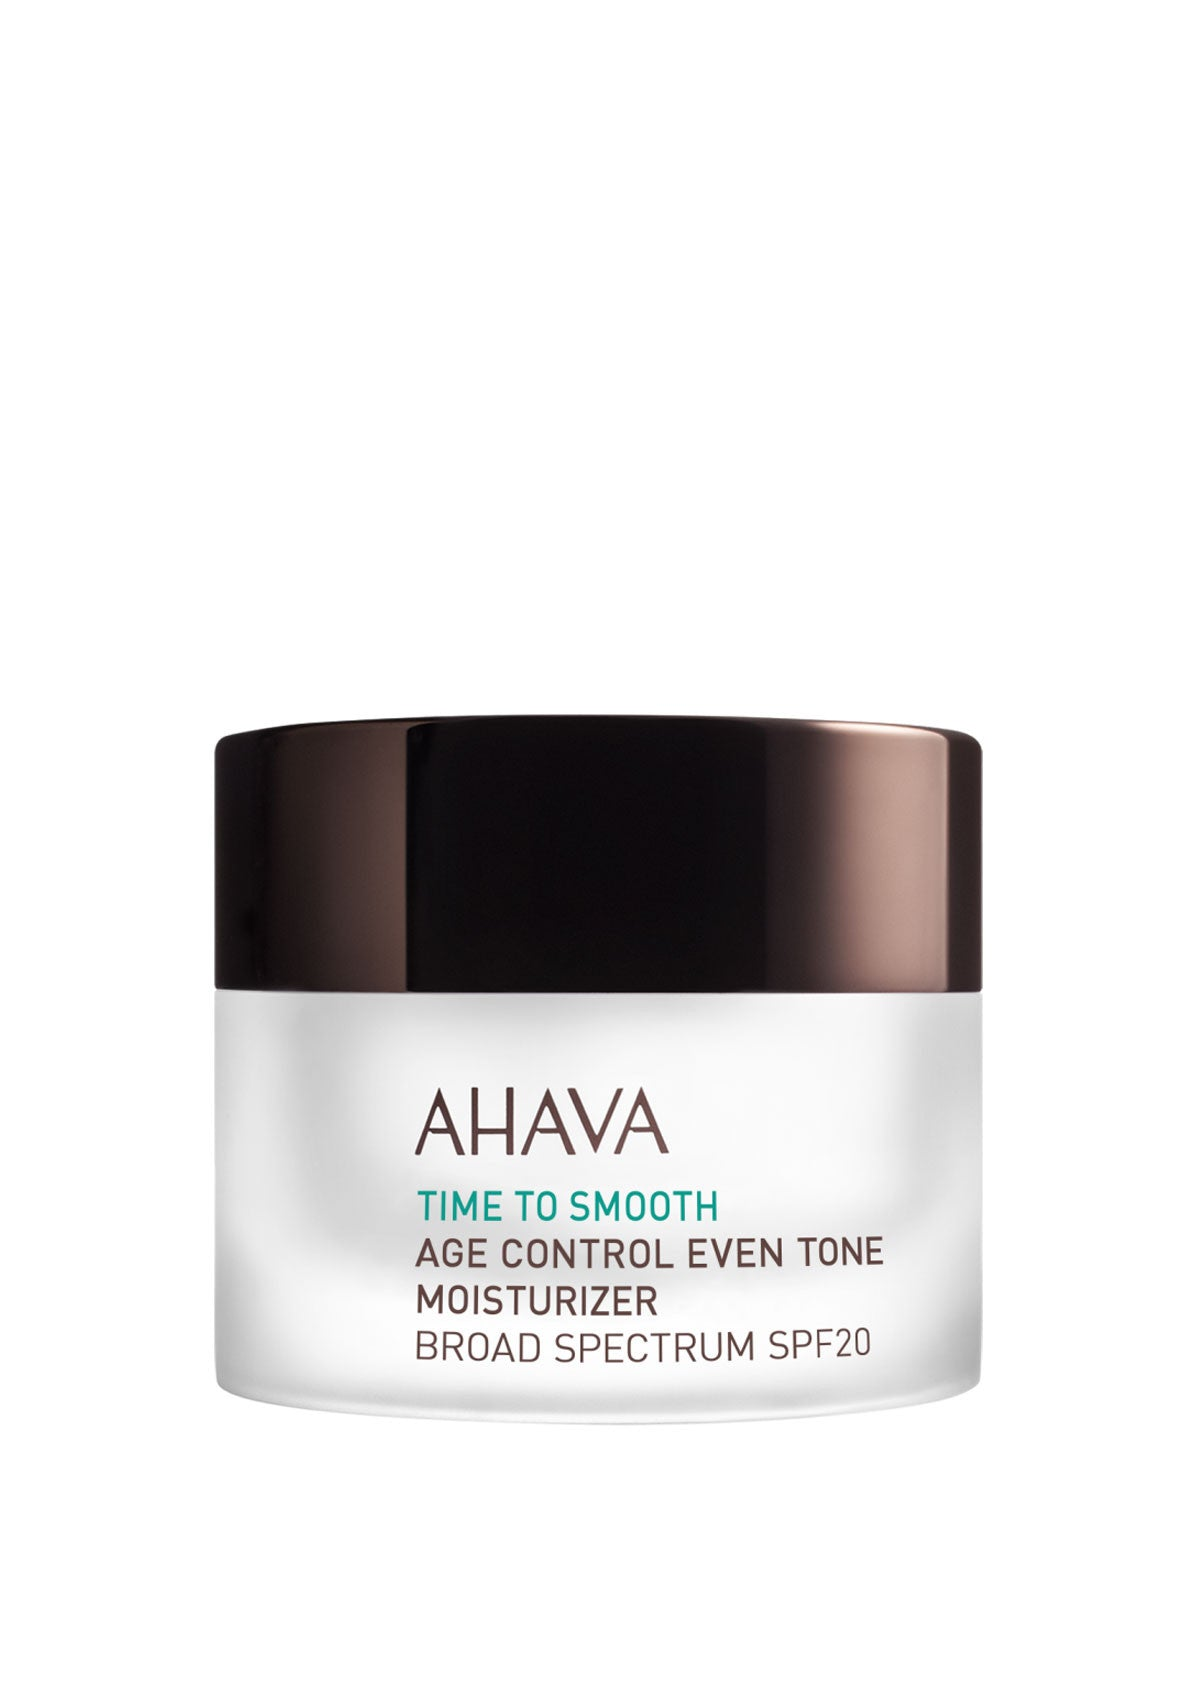 AHAVA - Age Control Even Tone Moisturizer Broad Spectrum SPF 20 - DeadSeaShop.co.uk